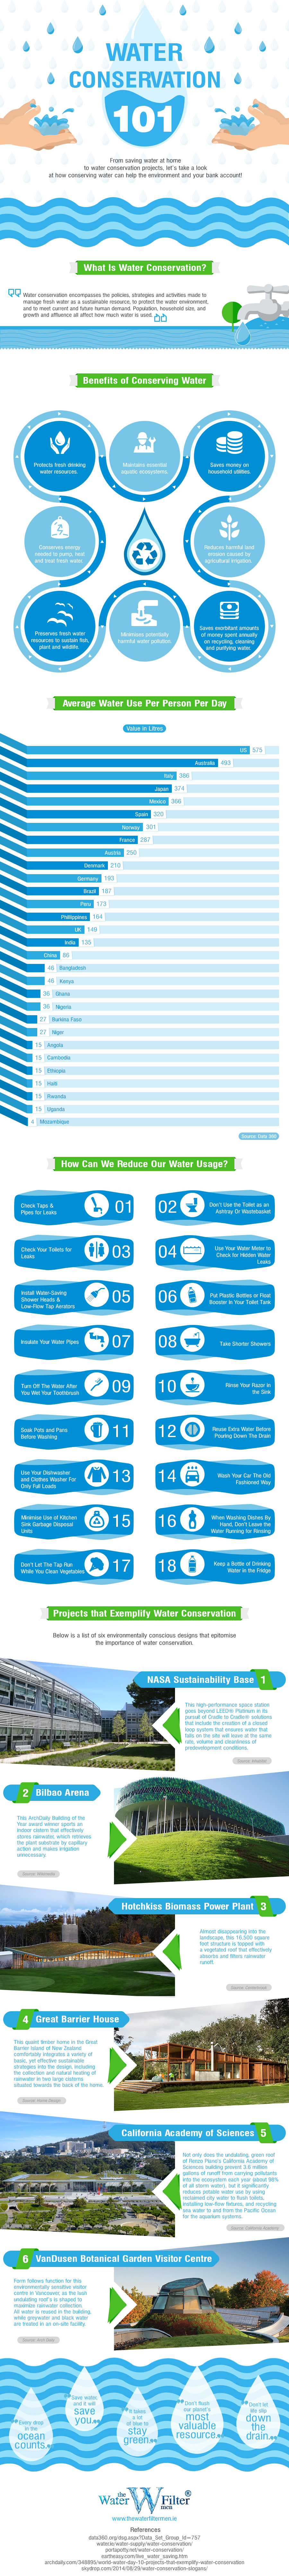 Water Conservation 101